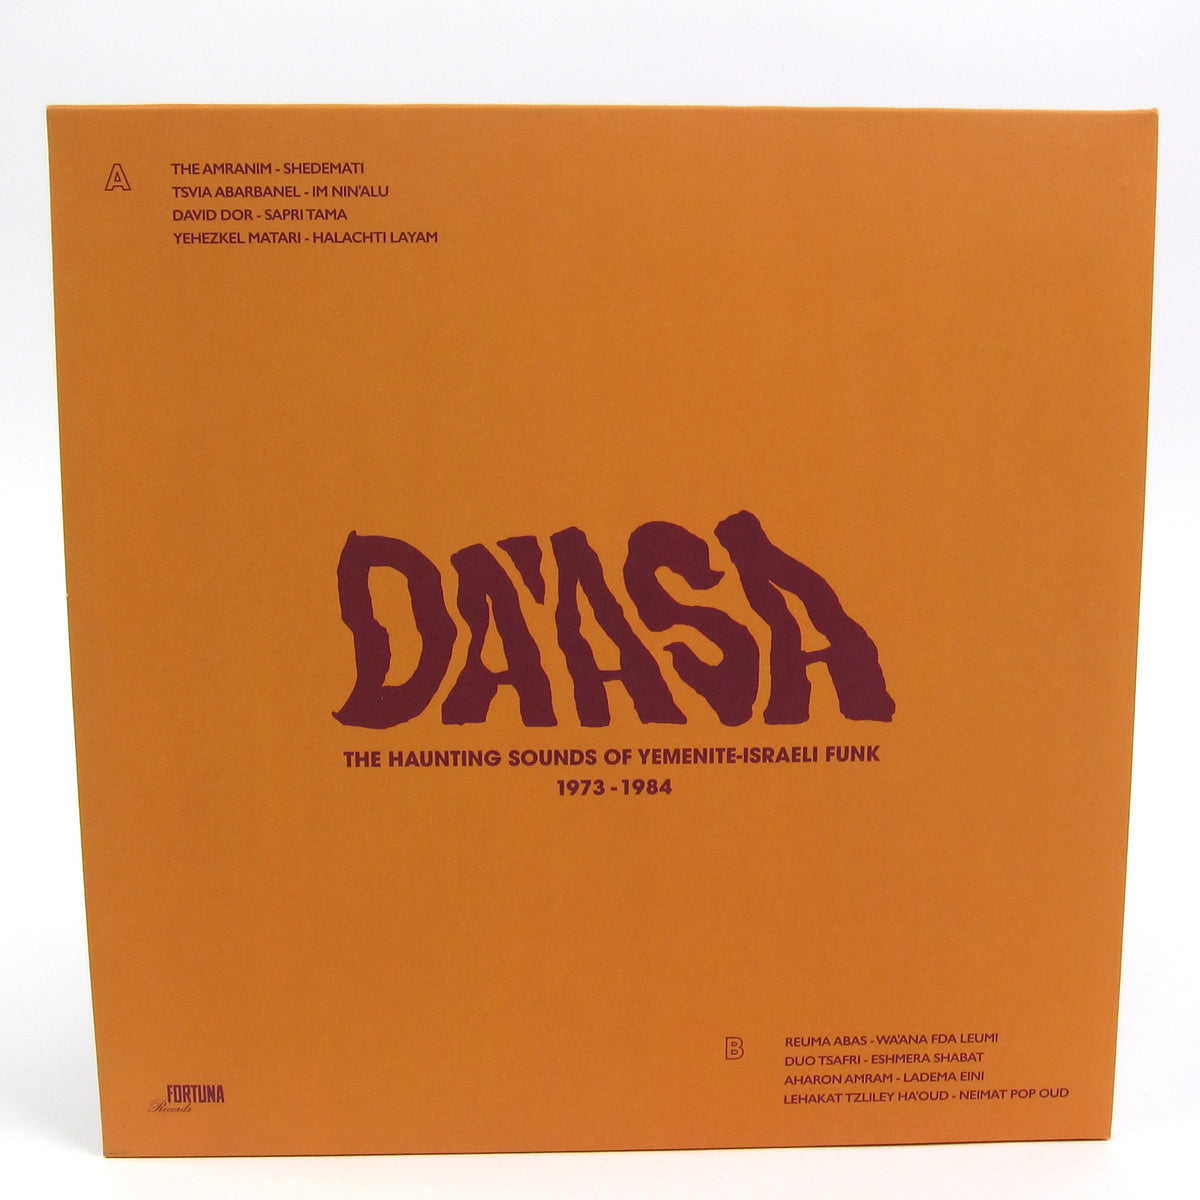 Fortuna Records: Da'asa - The Haunting Sounds of Yemenite-Israeli Funk 1973-84 Vinyl LP